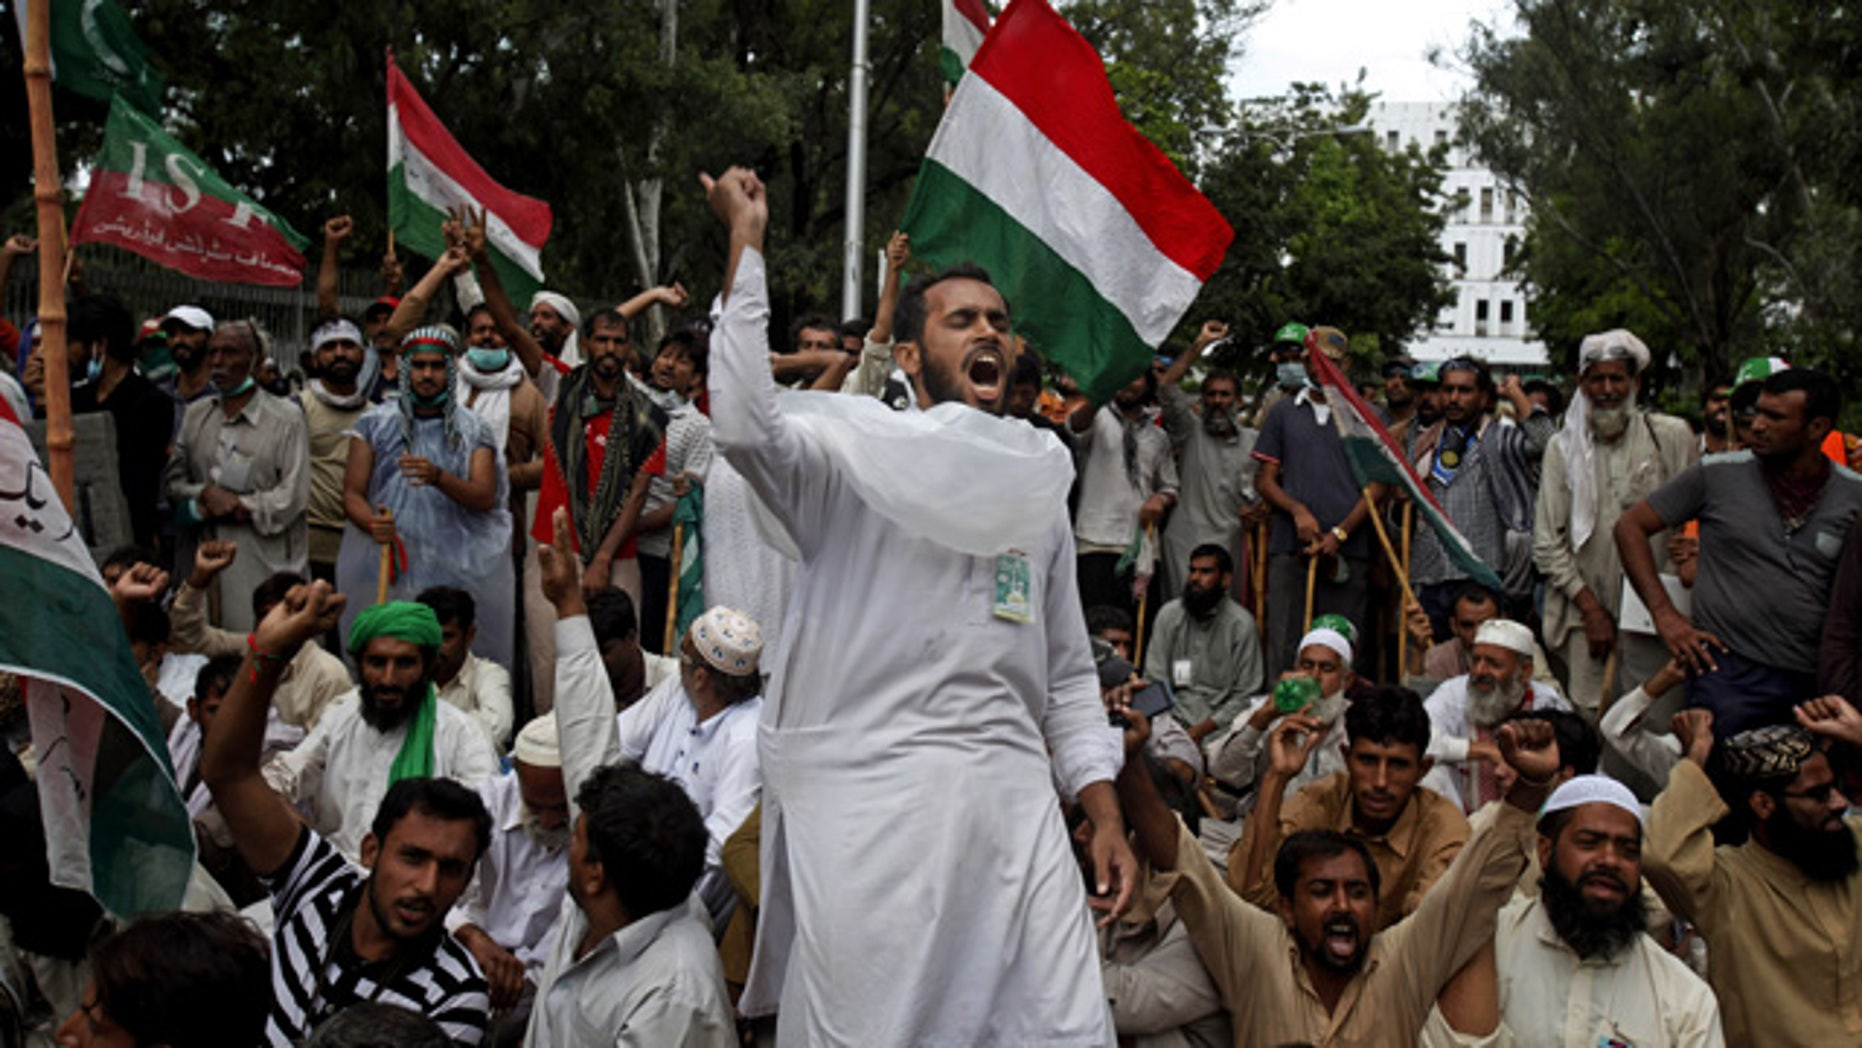 September 1, 2014: Supporters of anti-government Muslim cleric Tahir-ul-Qadri chant slogans during a protest close to the Prime Minister's home in Islamabad, Pakistan. (AP Photo/Anjum Naveed)